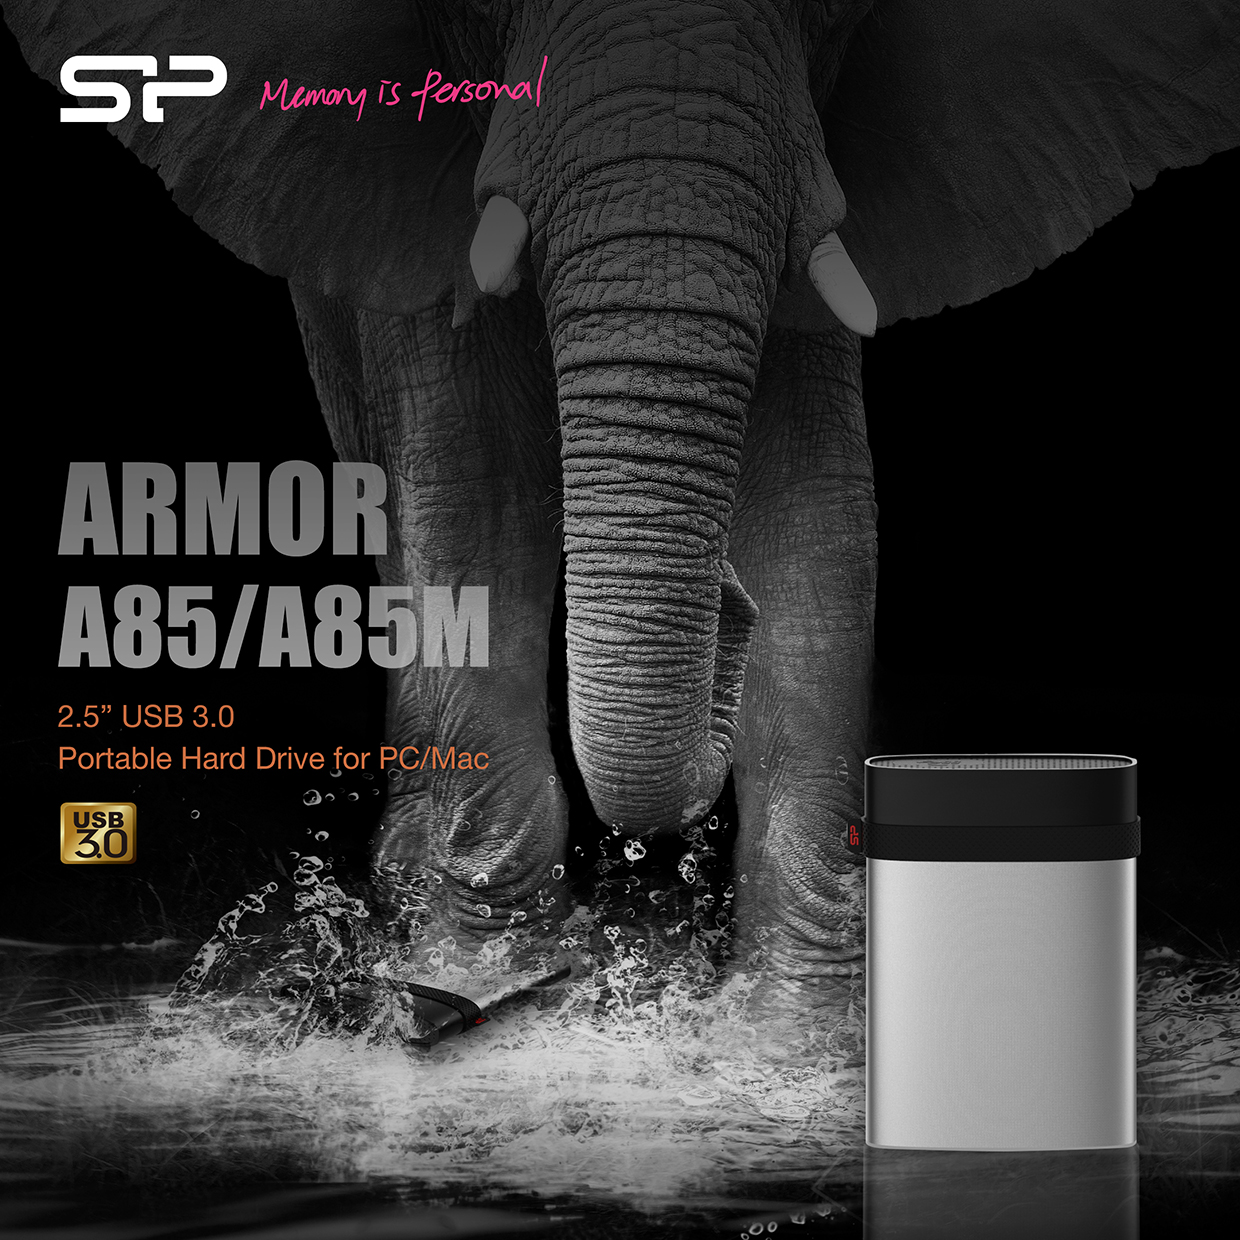 SP/ Silicon Power Introduces the Armor A85/A85M Portable Hard Drive  Complete data protection with full disk encryption, shockproof, waterproof and pressure-resistant functions